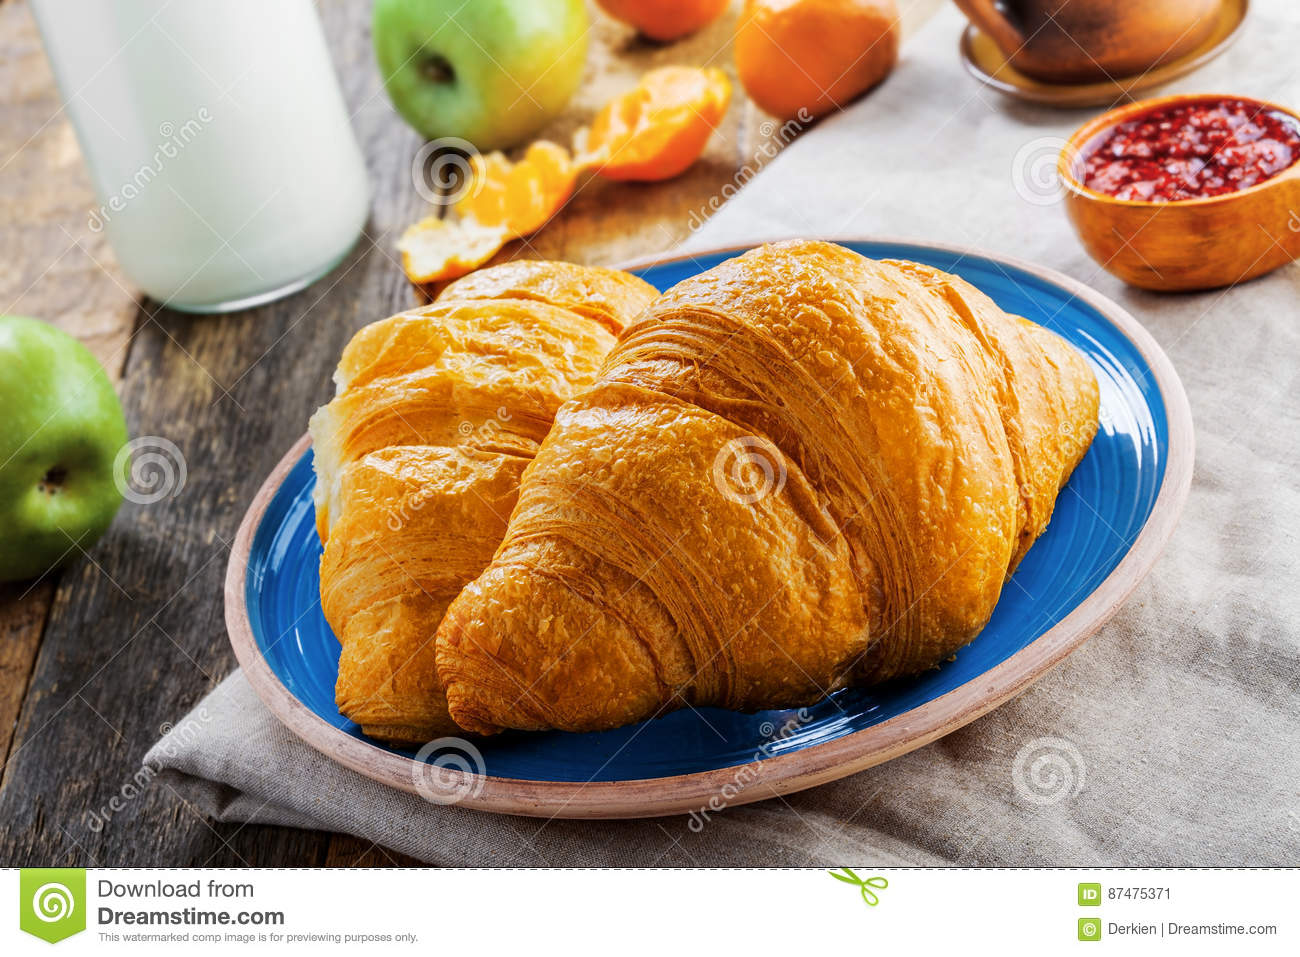 Traditionele Franse croissants